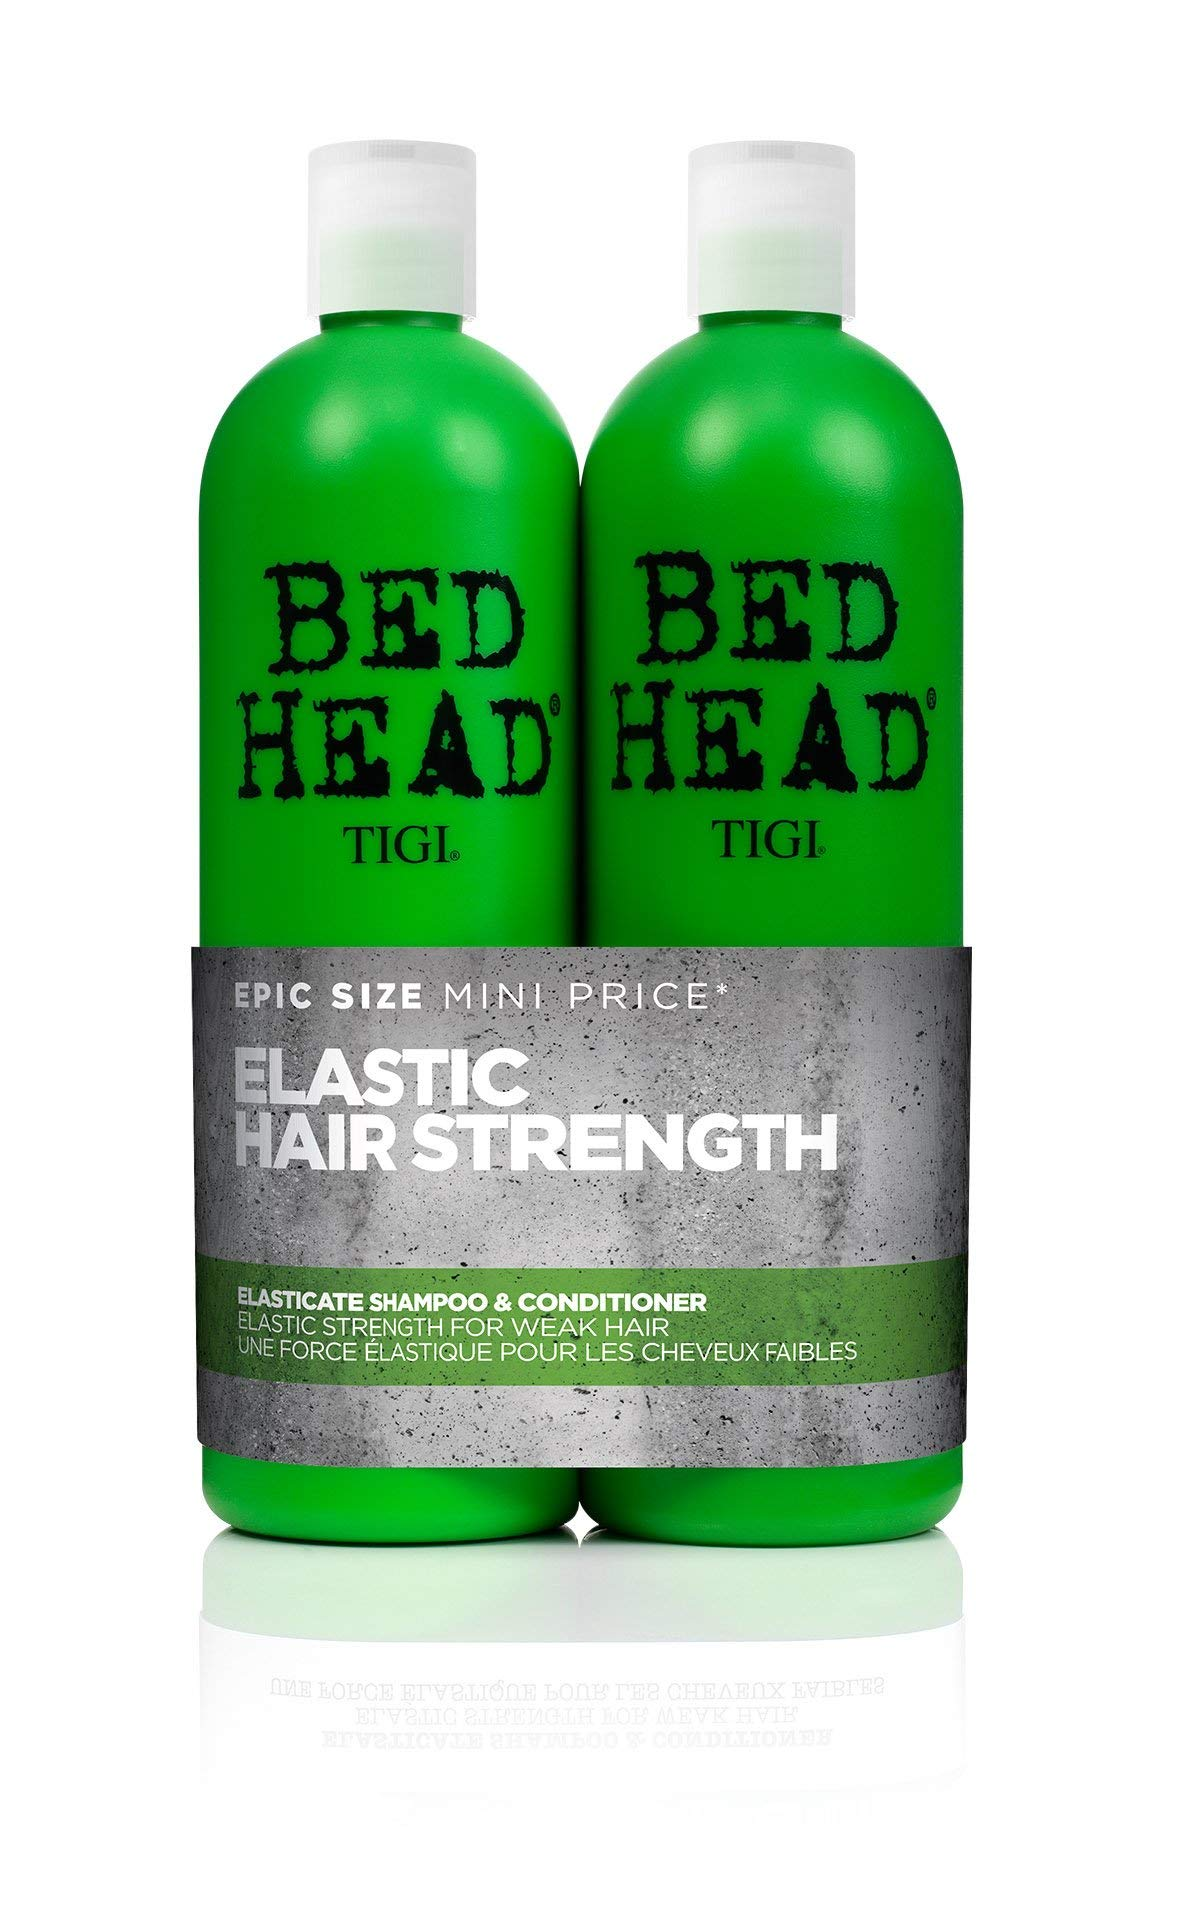 Bed Head by Tigi Elasticate Shampoo and Conditioner for Weak Hair 2 x 750 ml